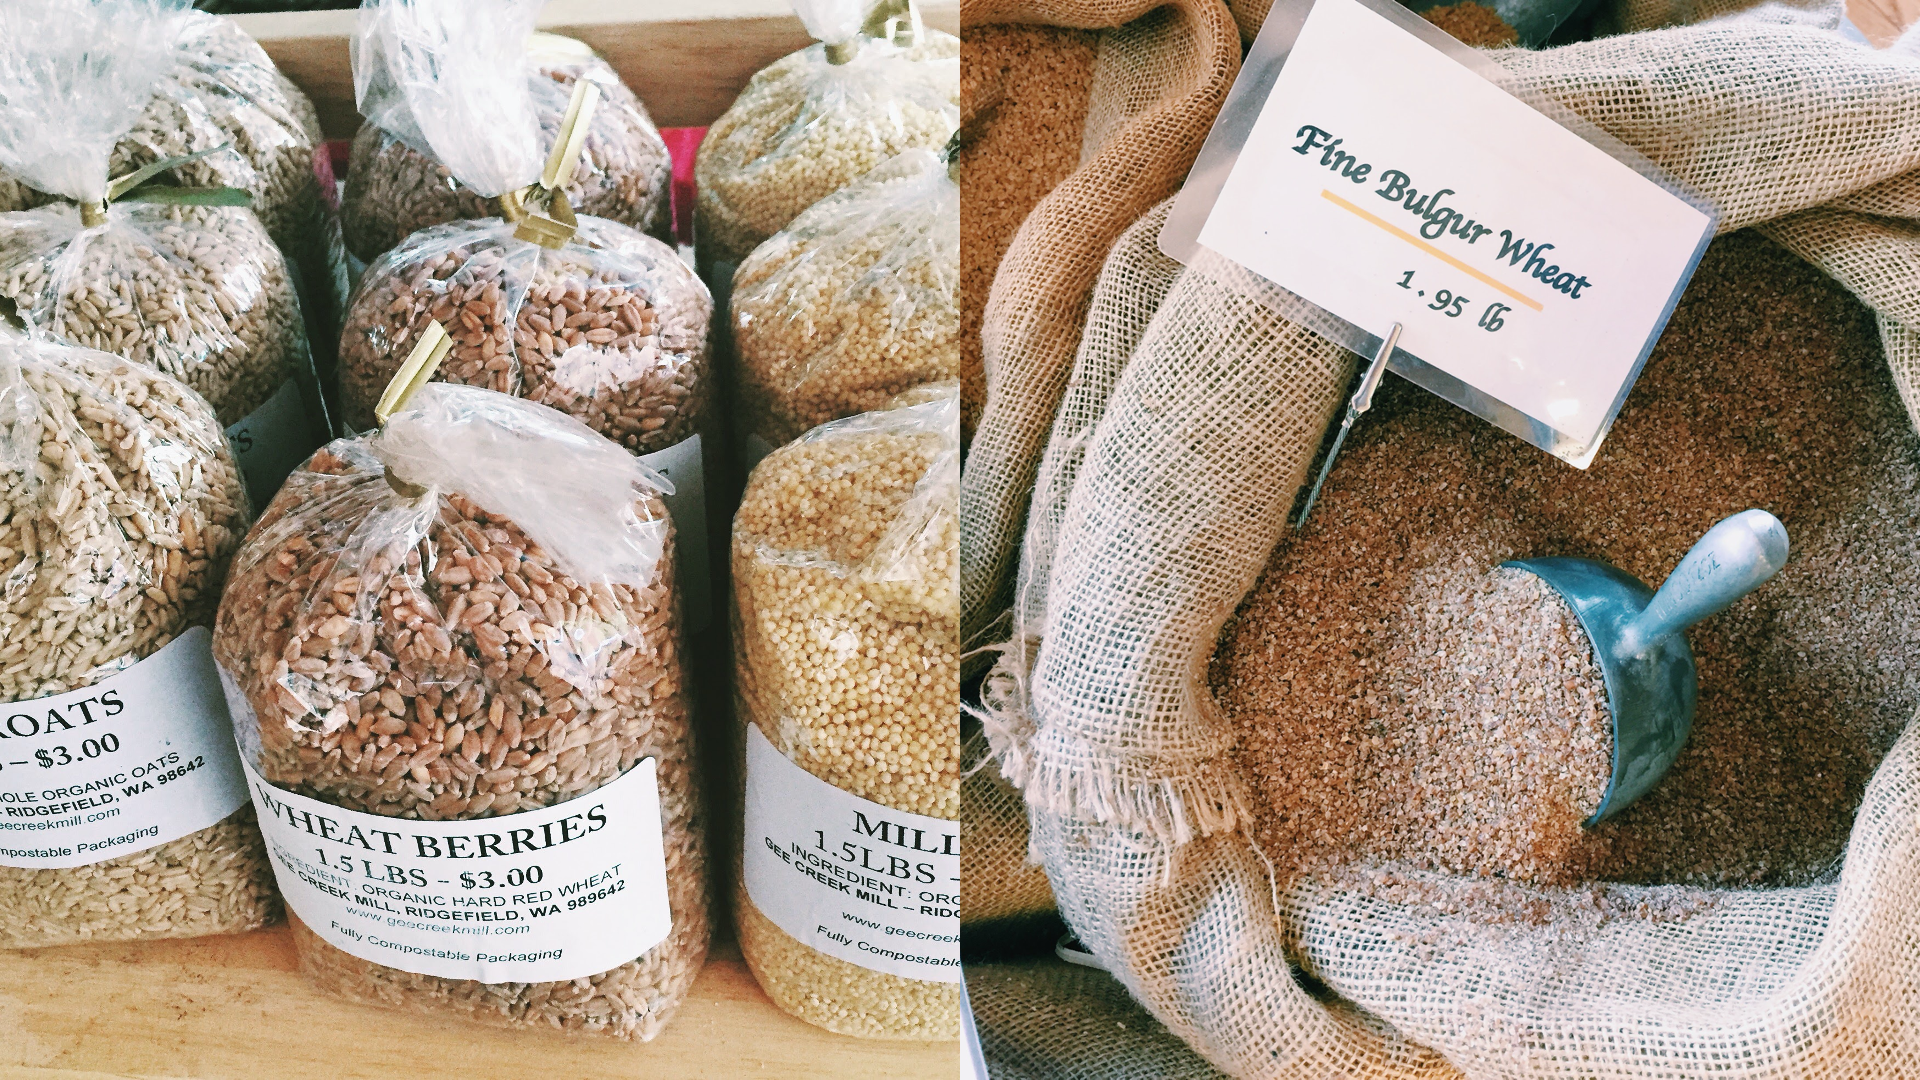 a photo of plastic bags of wheat berries at a farmers market next to a photo of a burlap bag of bulgur wheat